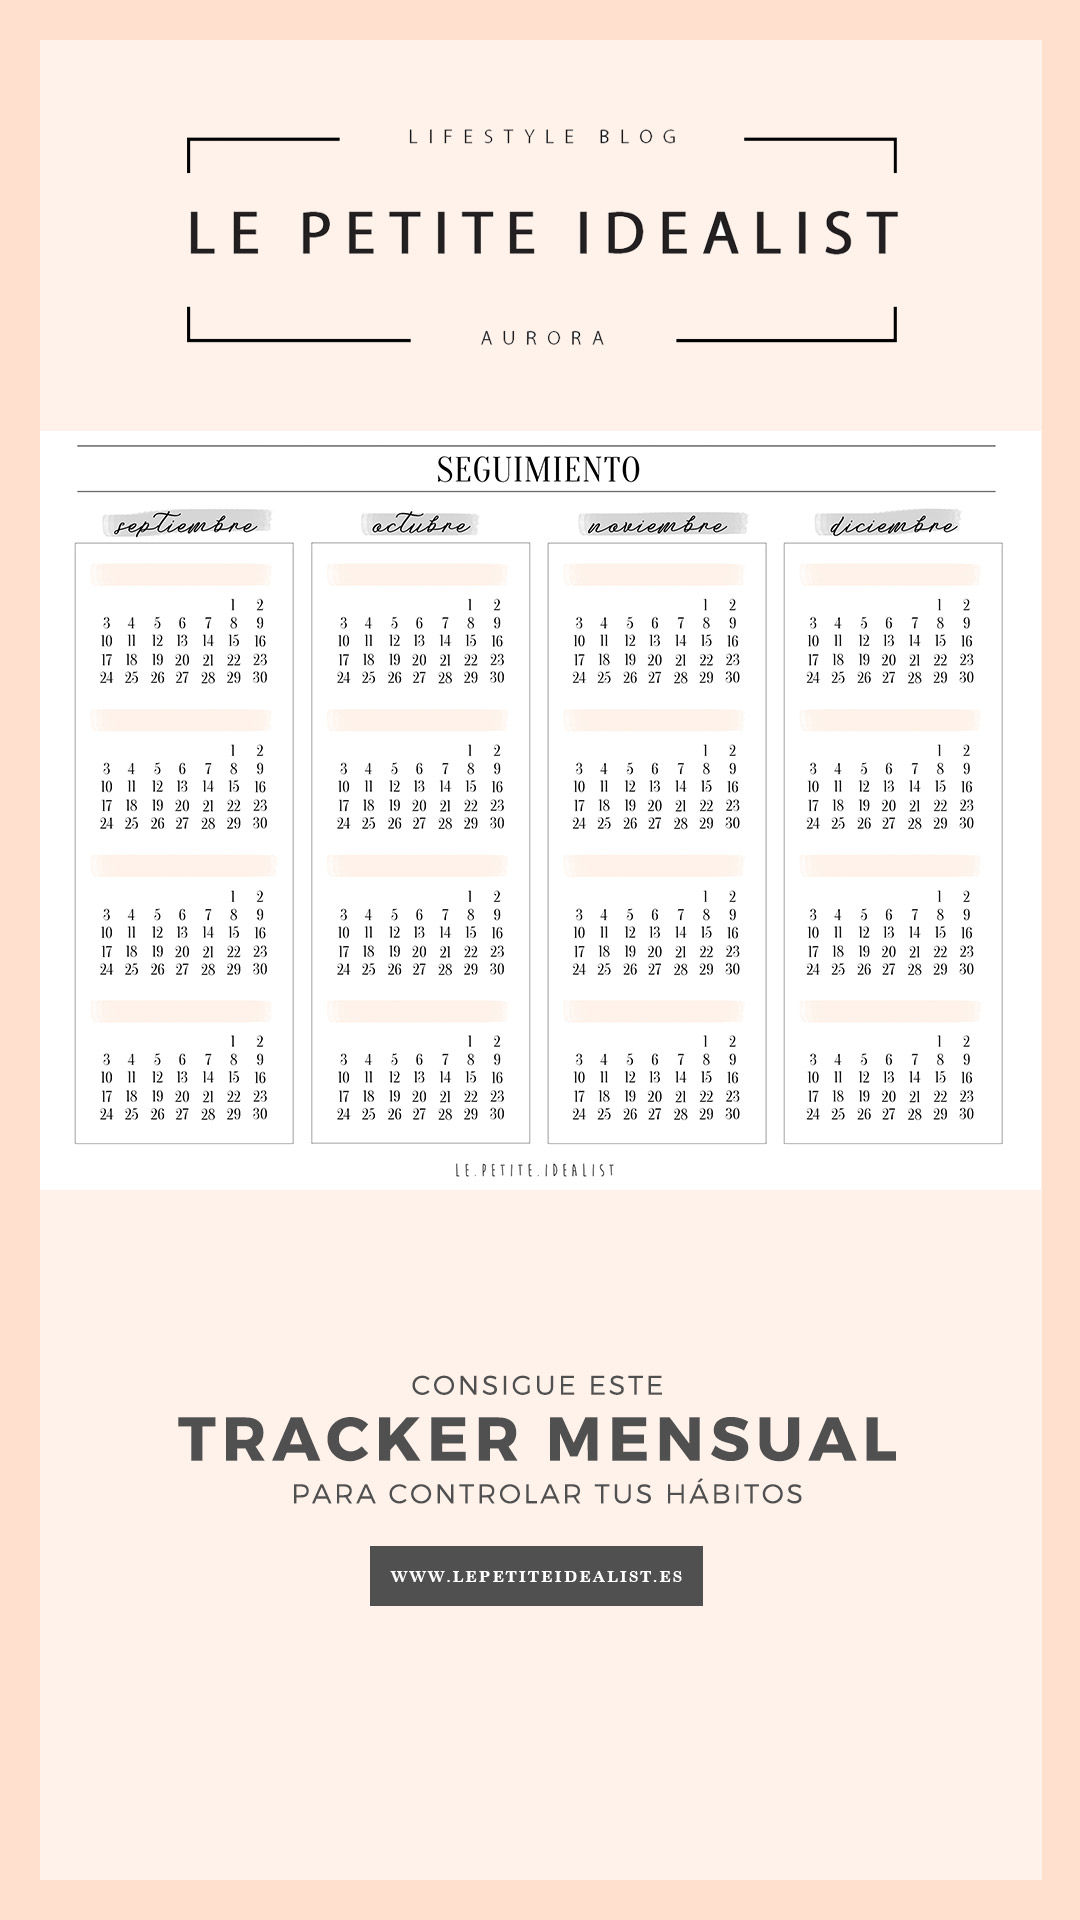 trackers mensuales